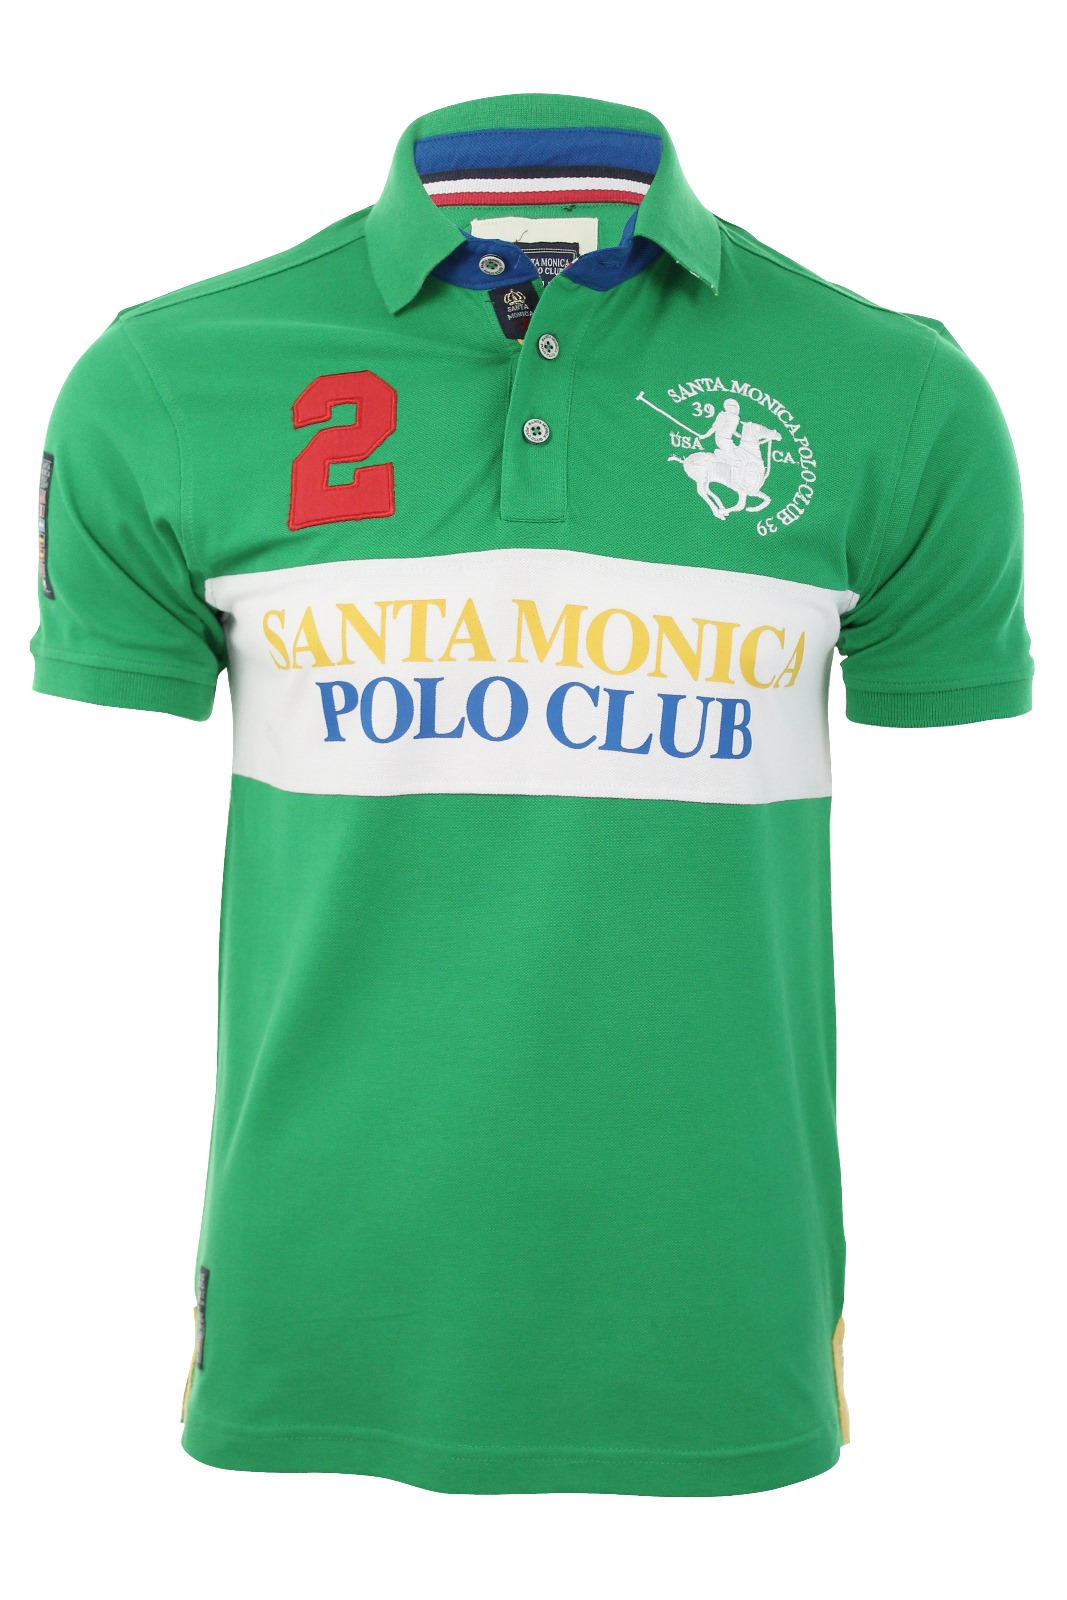 mens pique polo santa monica polo club t shirt 39 roberto